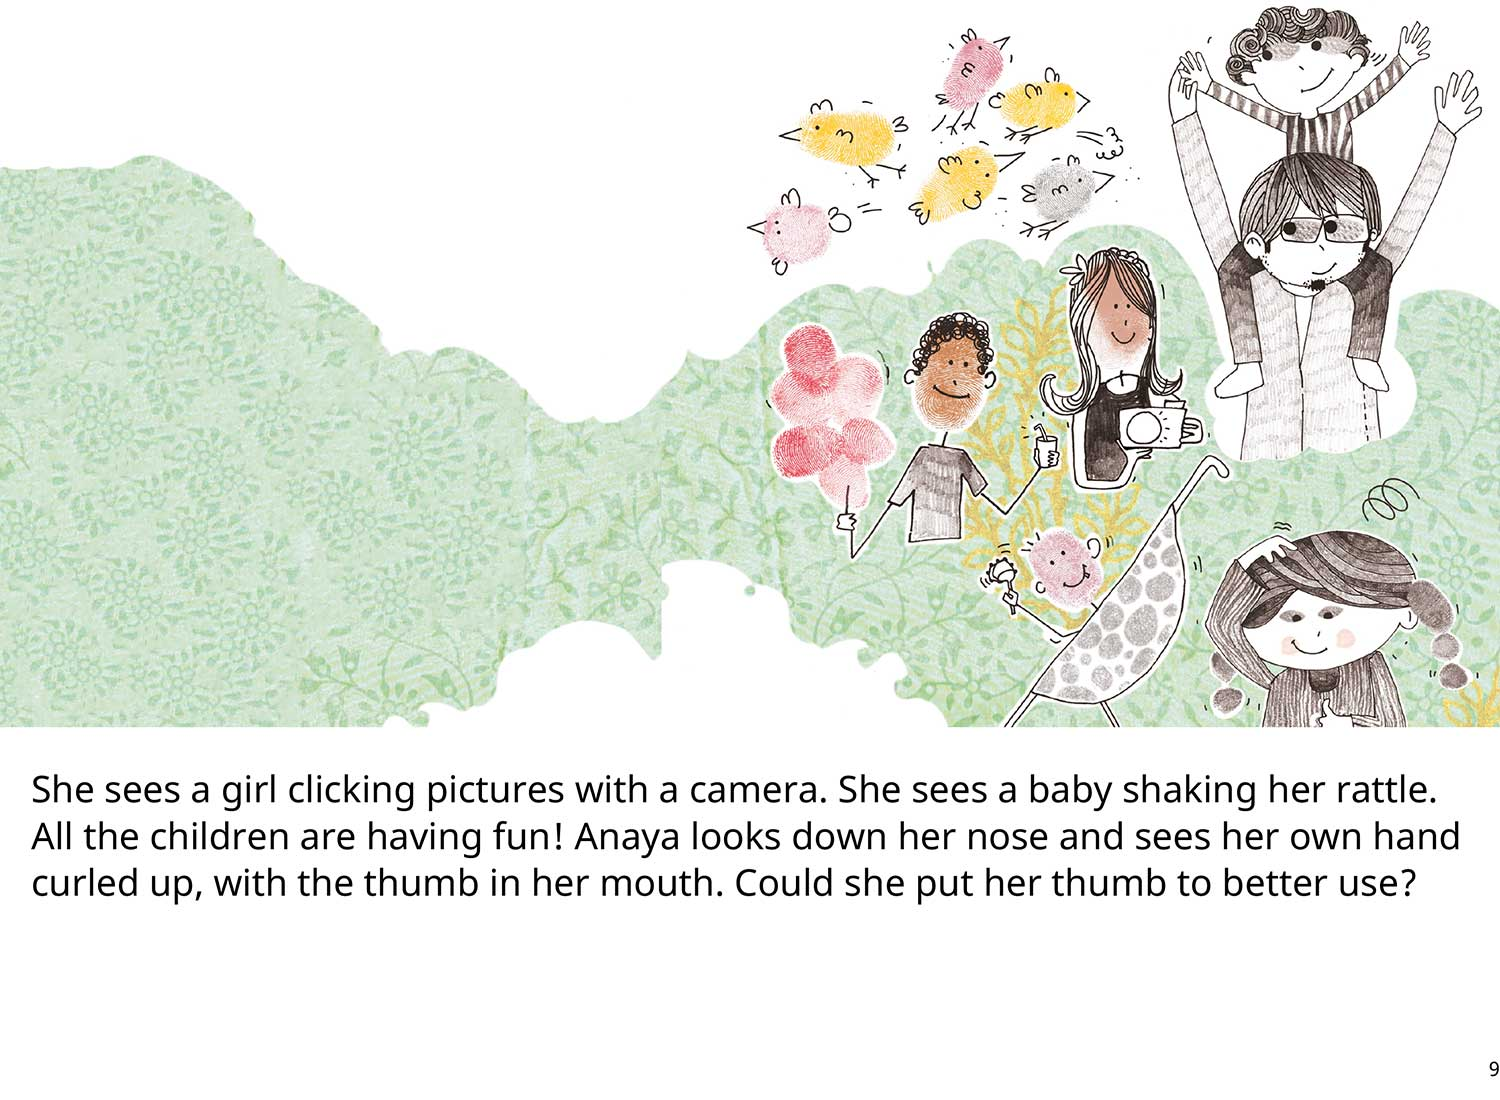 Anaya's Thumb Free toddler's story book - page 8